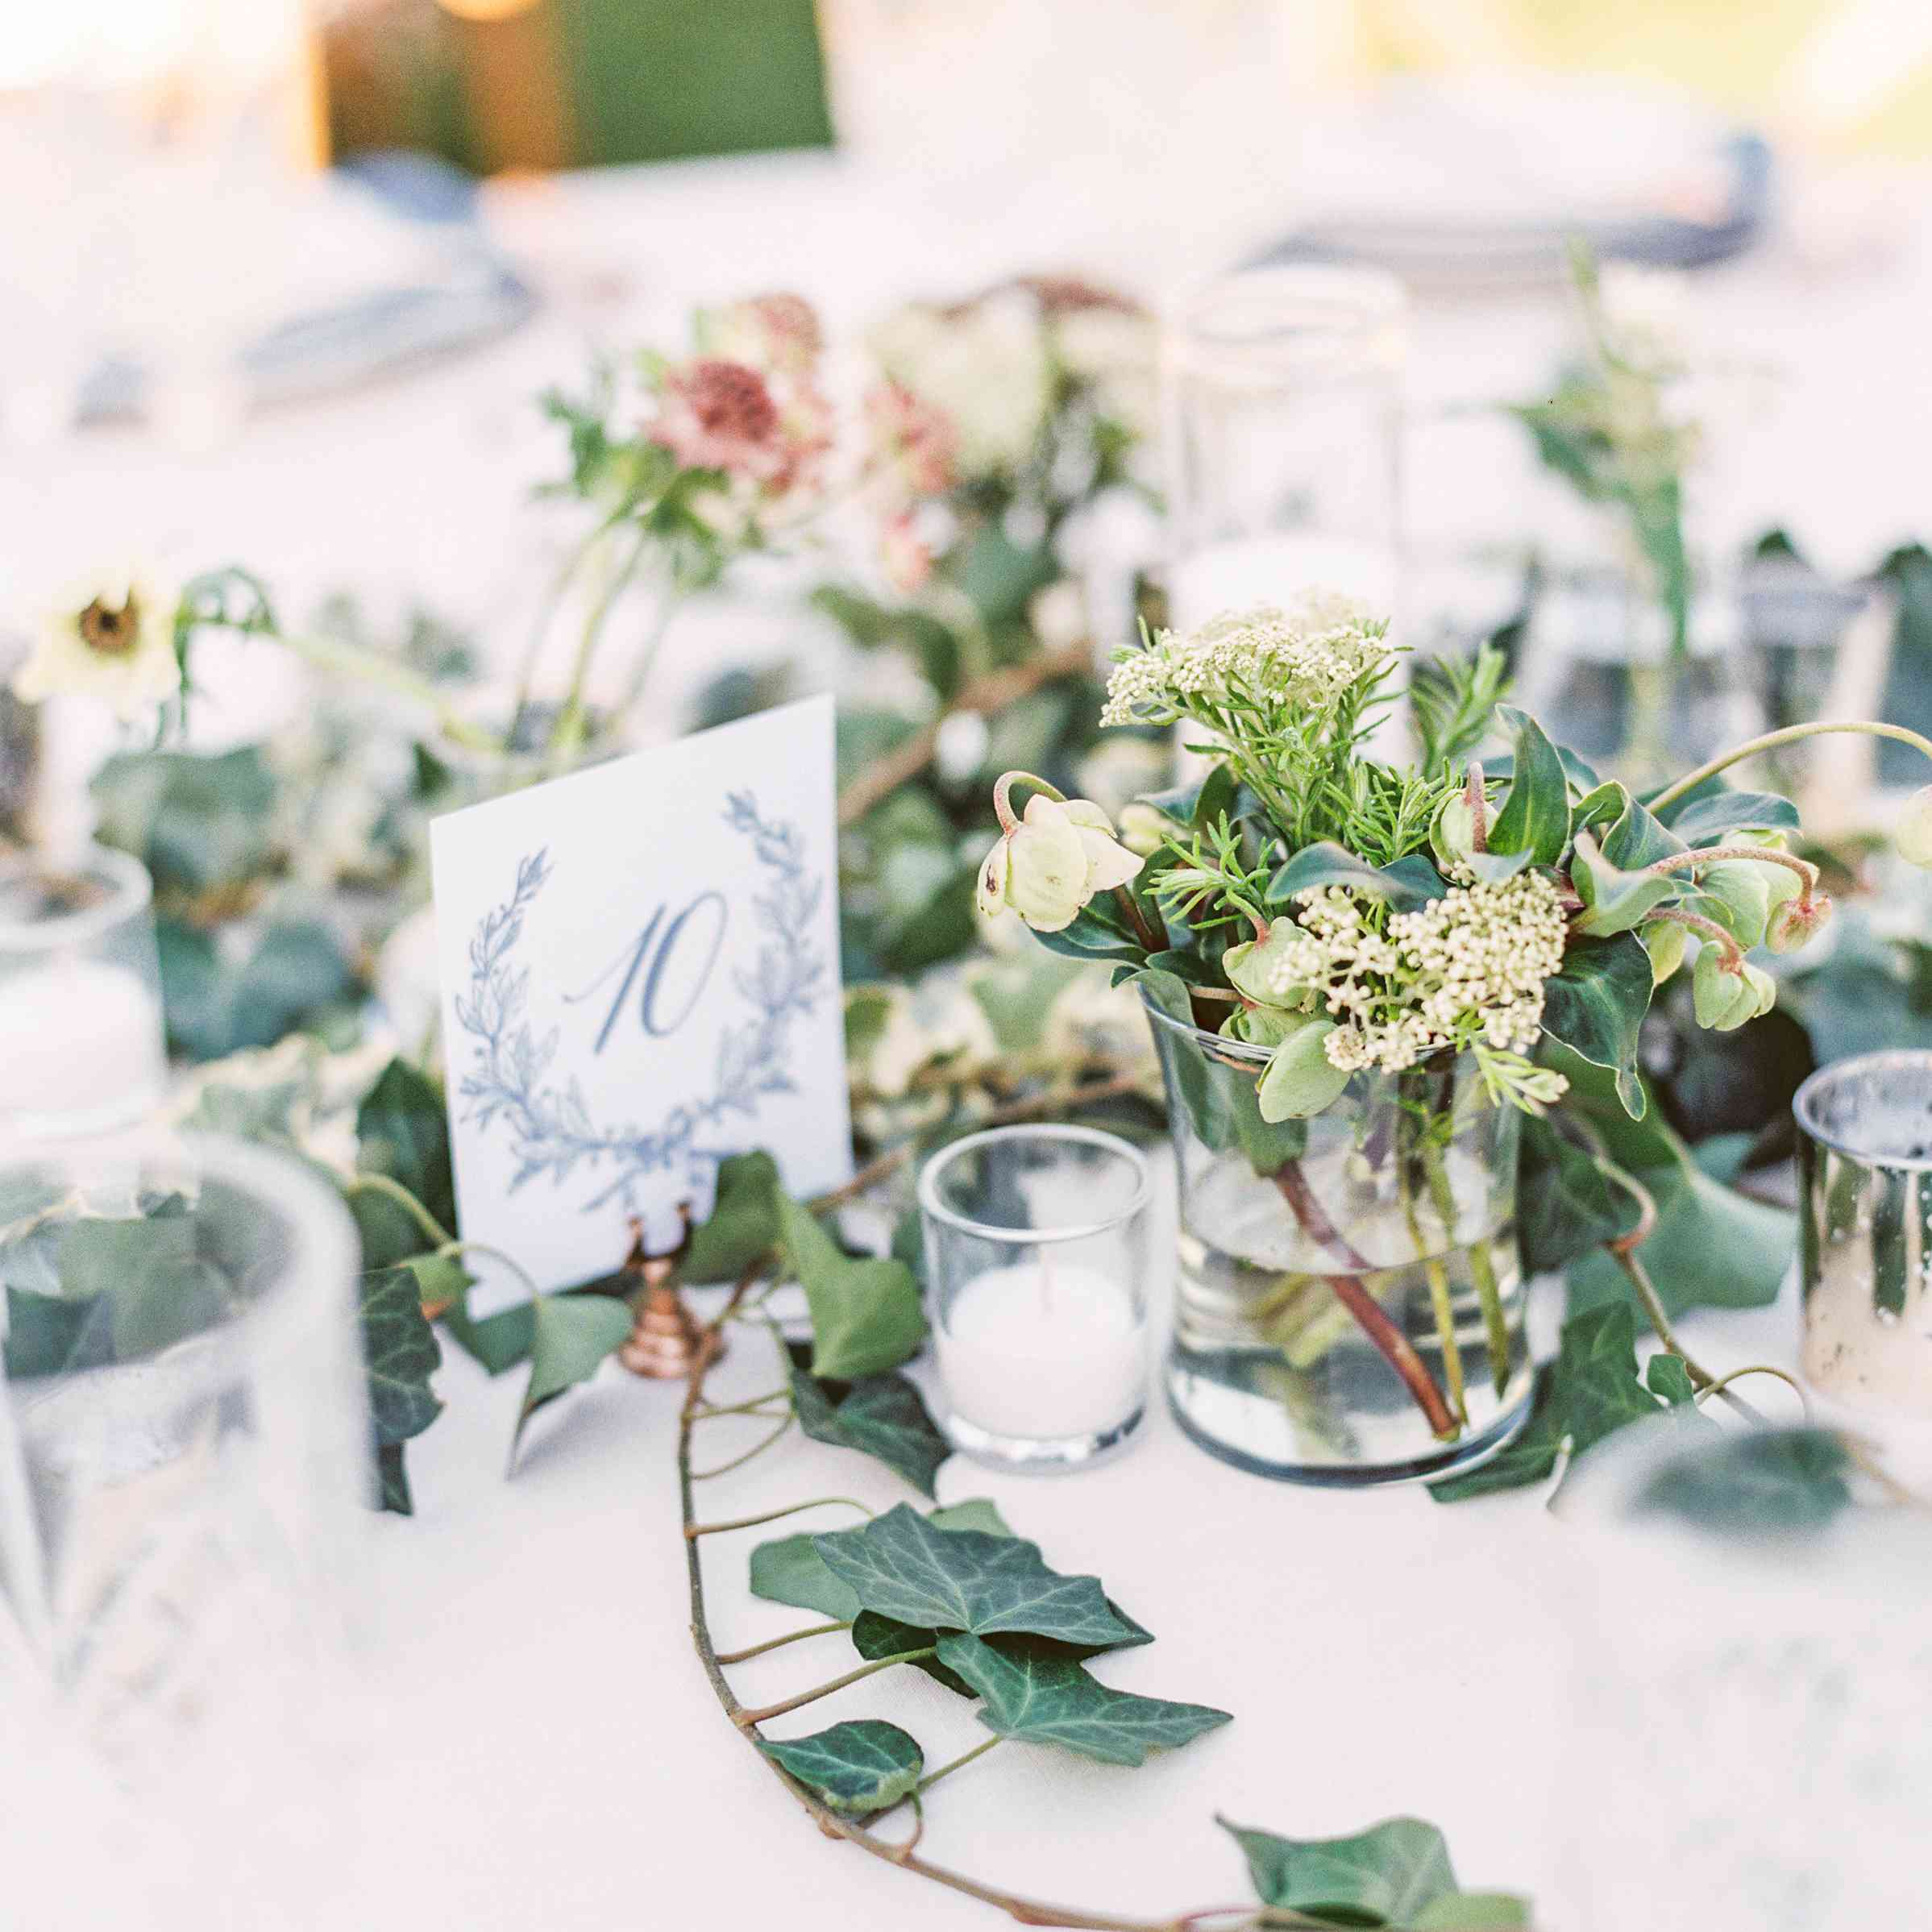 Ivy-Covered White Tabletop